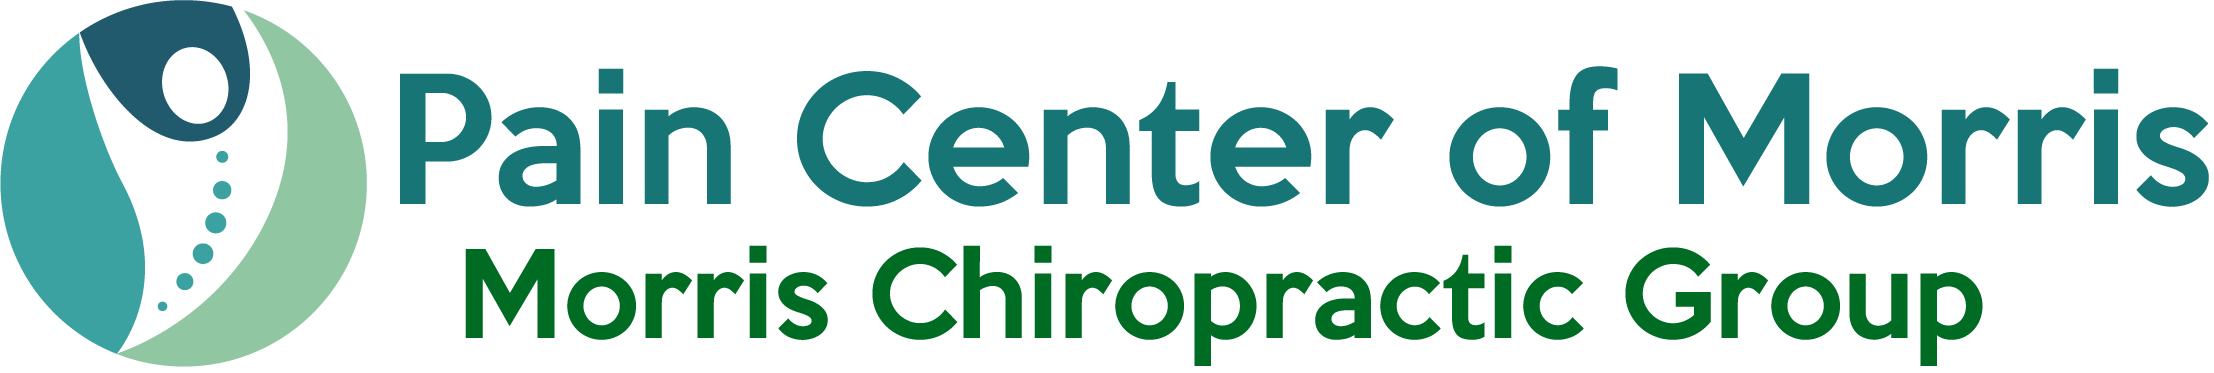 Pain Center Of Morris - Chiropractor in Elizabeth, NJ